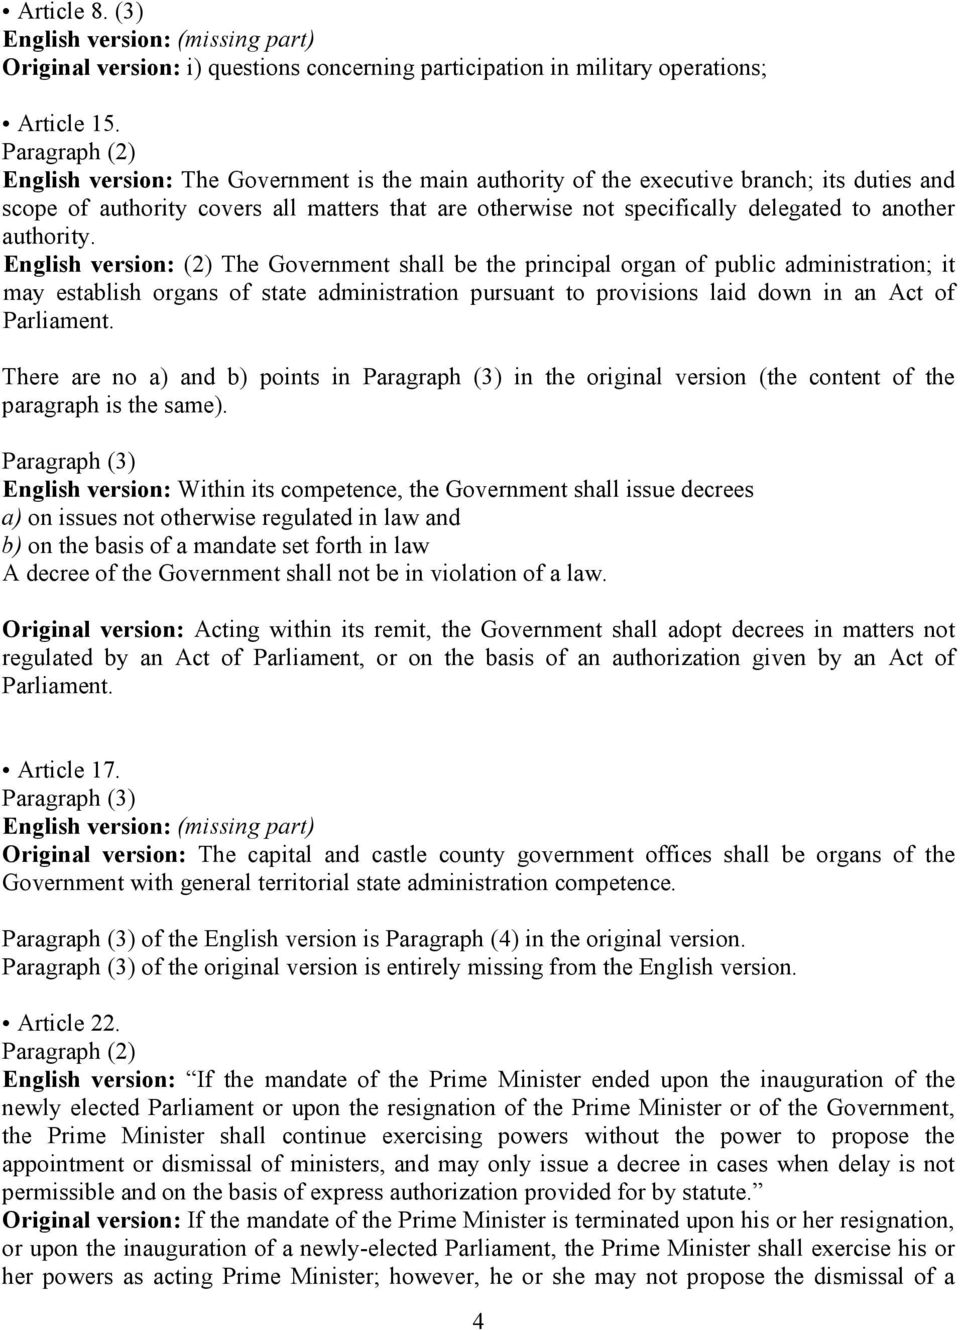 English version: (2) The Government shall be the principal organ of public administration; it may establish organs of state administration pursuant to provisions laid down in an Act of Parliament.